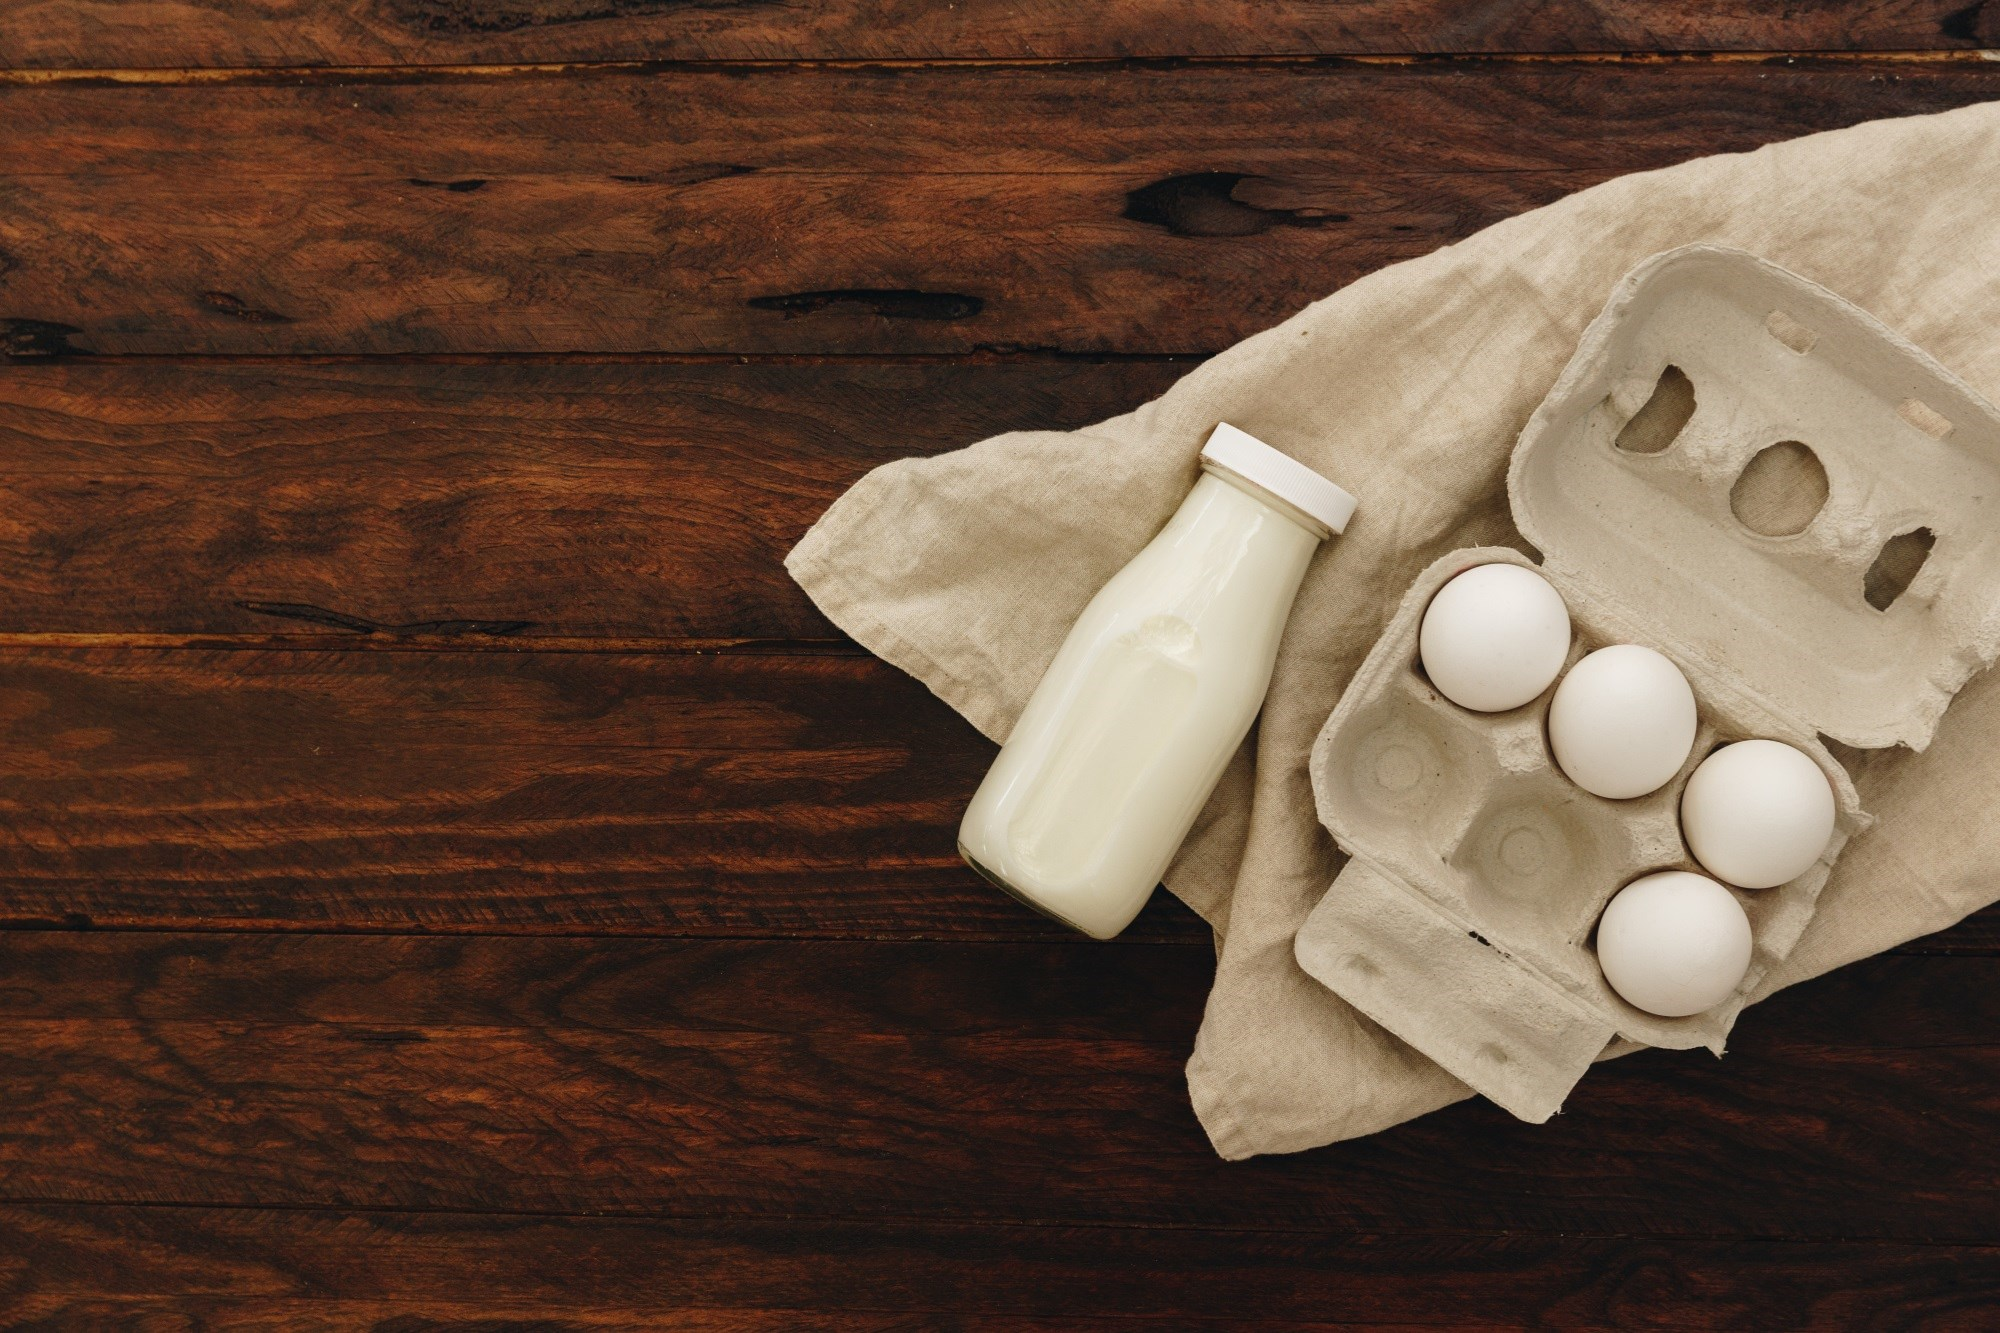 Eggs and cow's milk were the most common foods that caused anaphylaxis in infants vs peanuts and tree nuts.